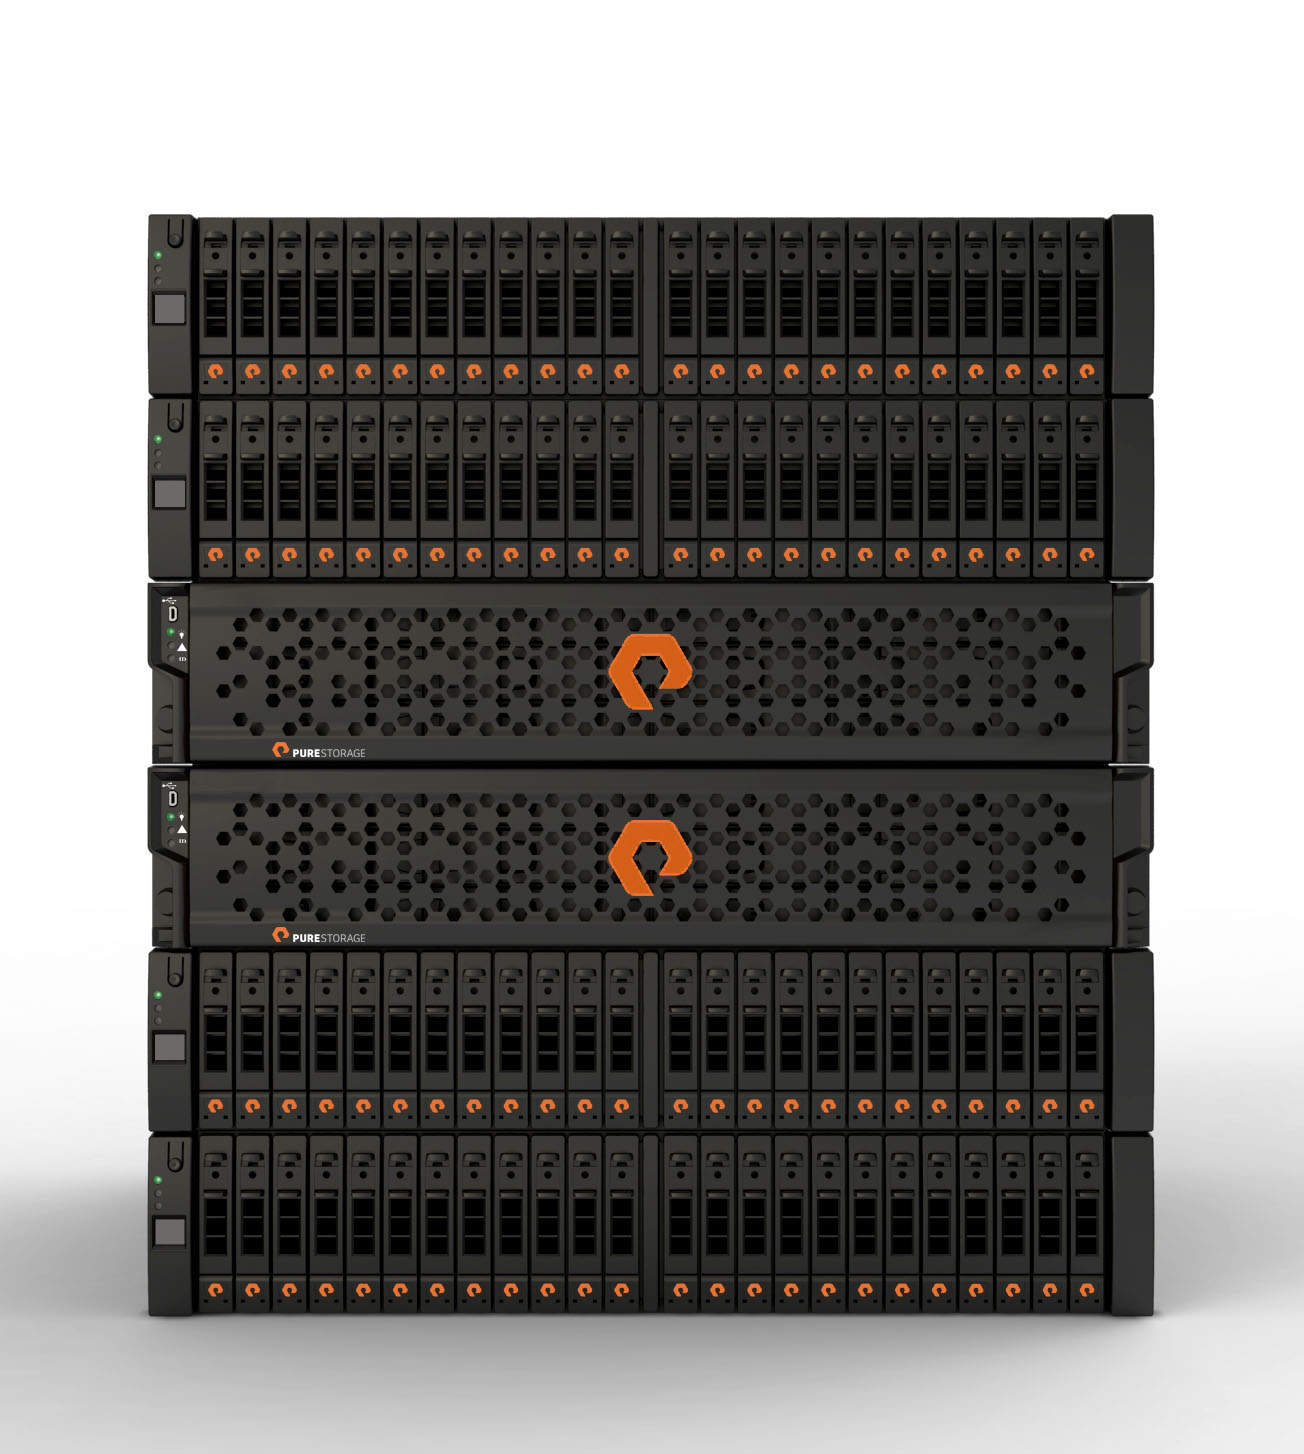 Pure Storage 2-x-4-front